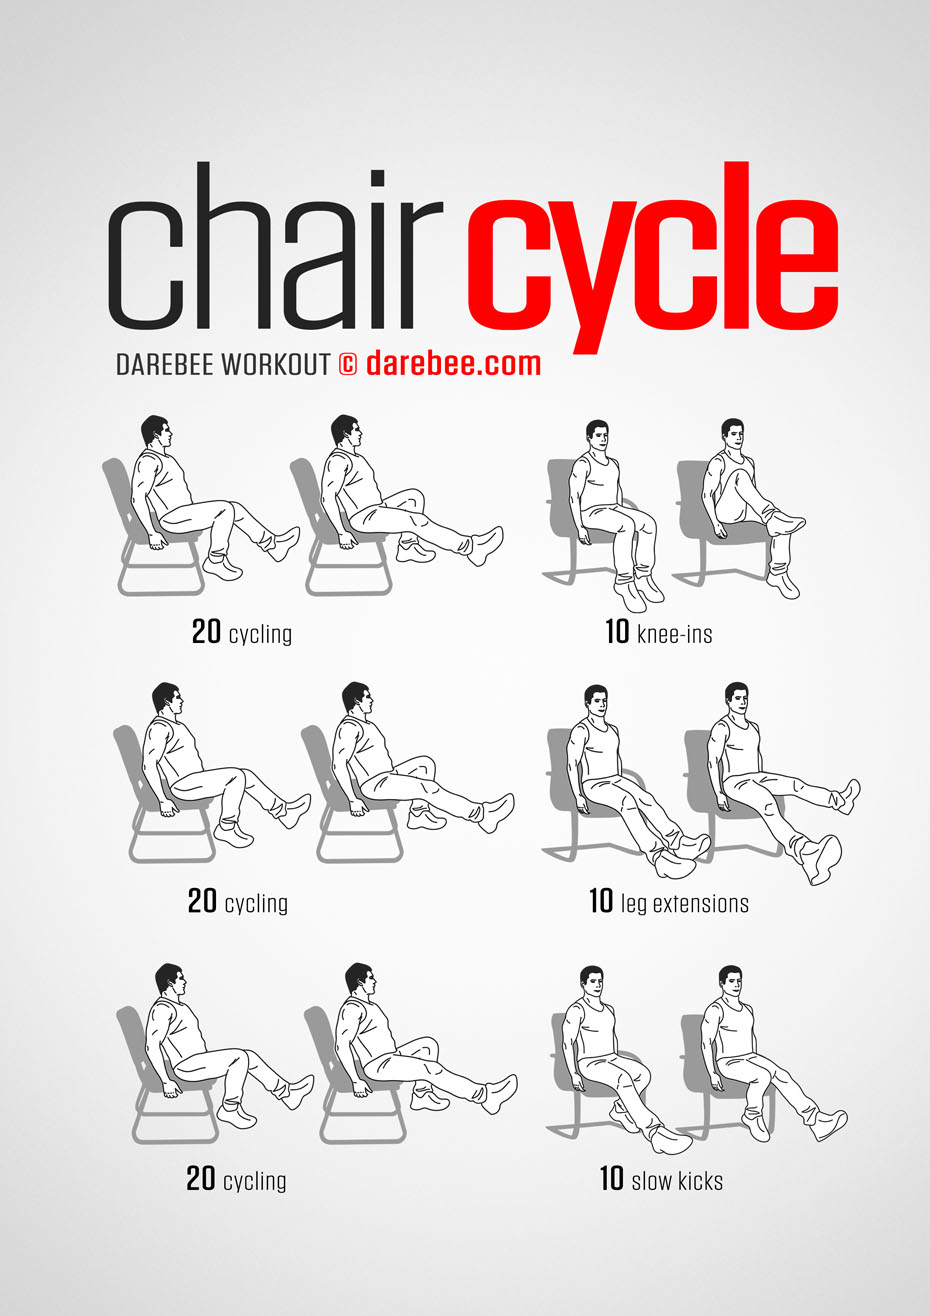 Chair Cycle Workout